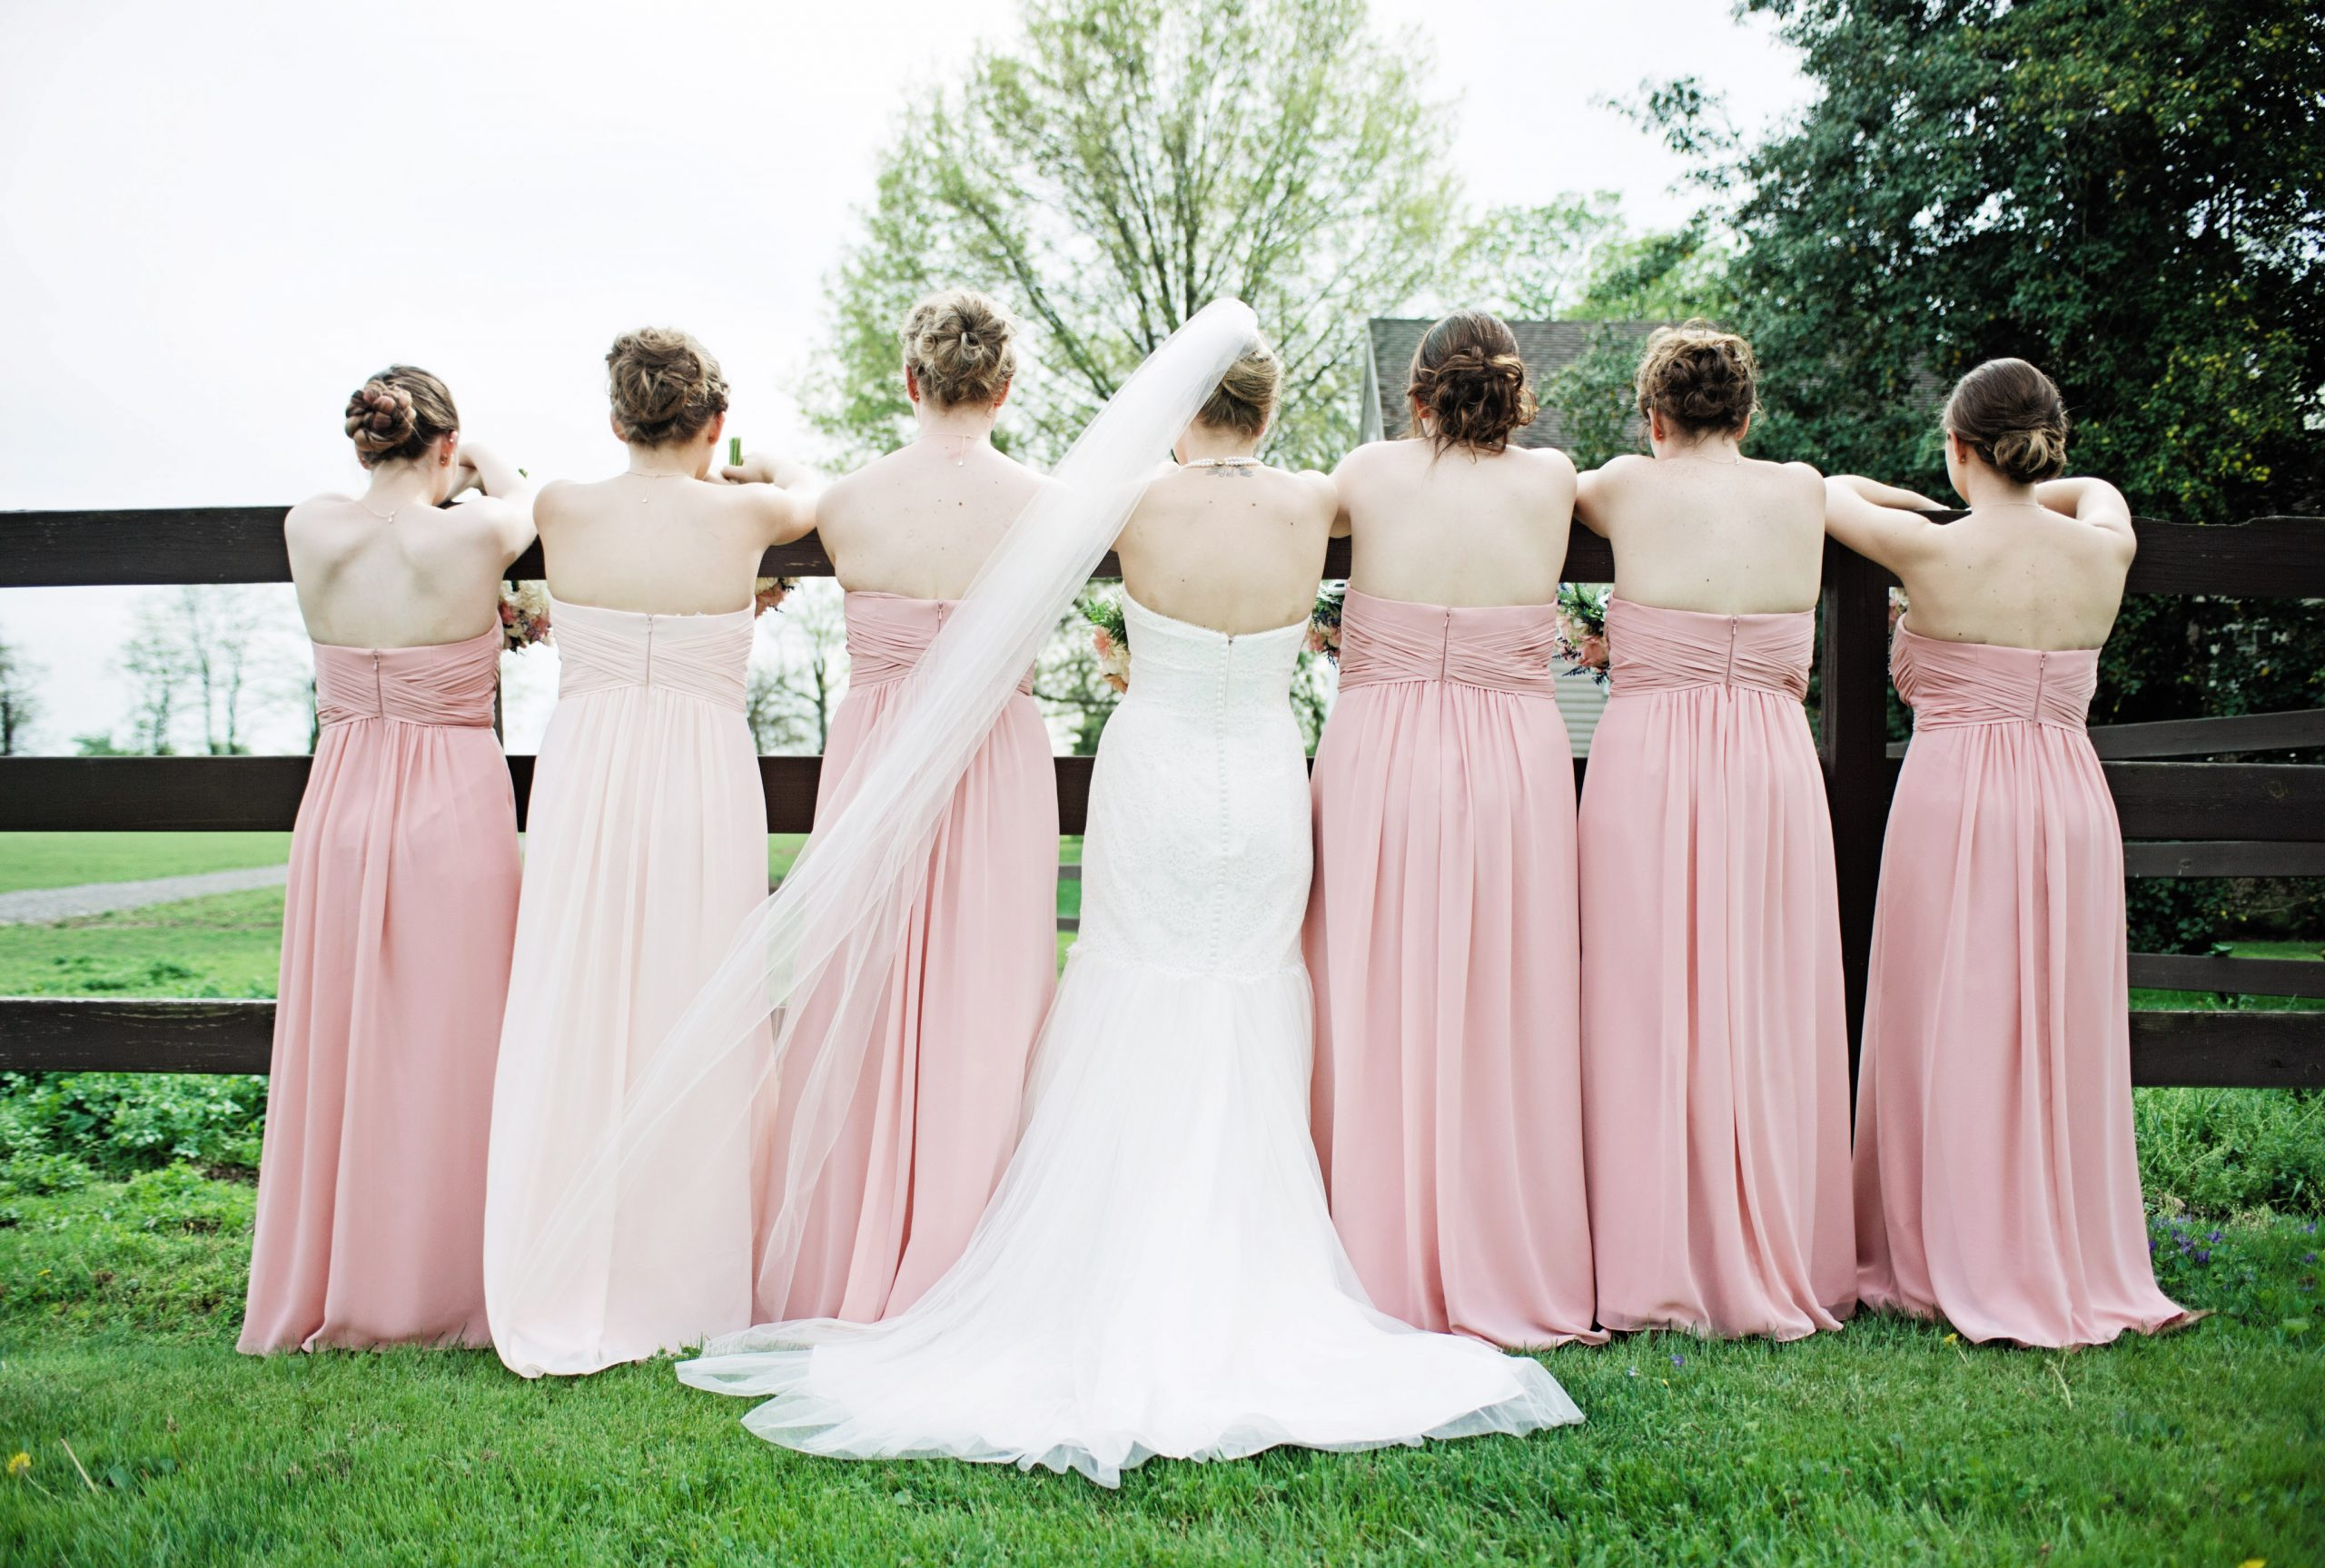 Lakeview Farms of York, PA offers the farm atmosphere for shots like this taken by Lovefusion Photography. Featured in Dream Weddings.